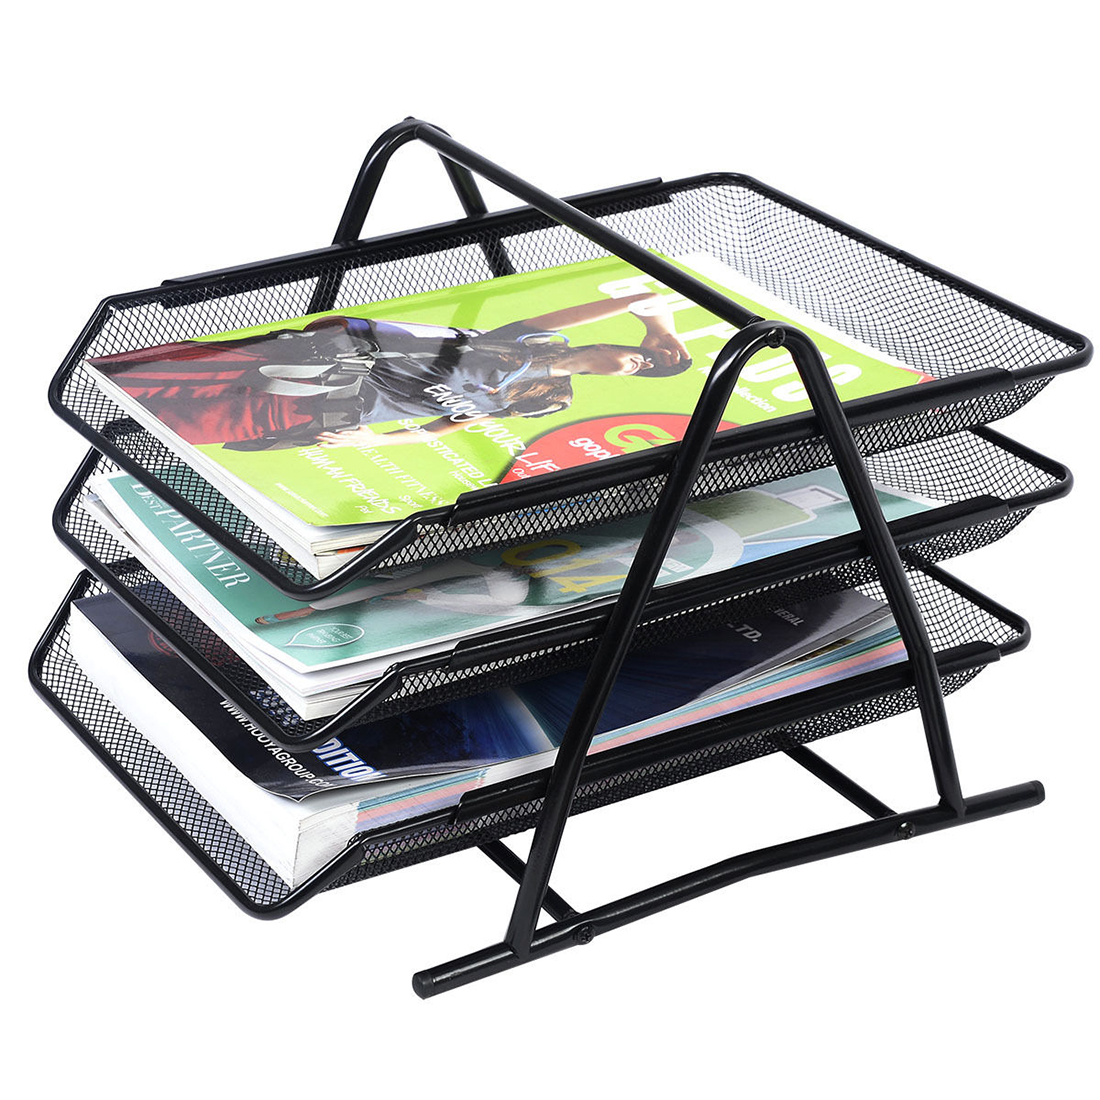 mesh letter sorter mail document tray desk office file organiser business blackchina mainland - Desk Organizer Tray